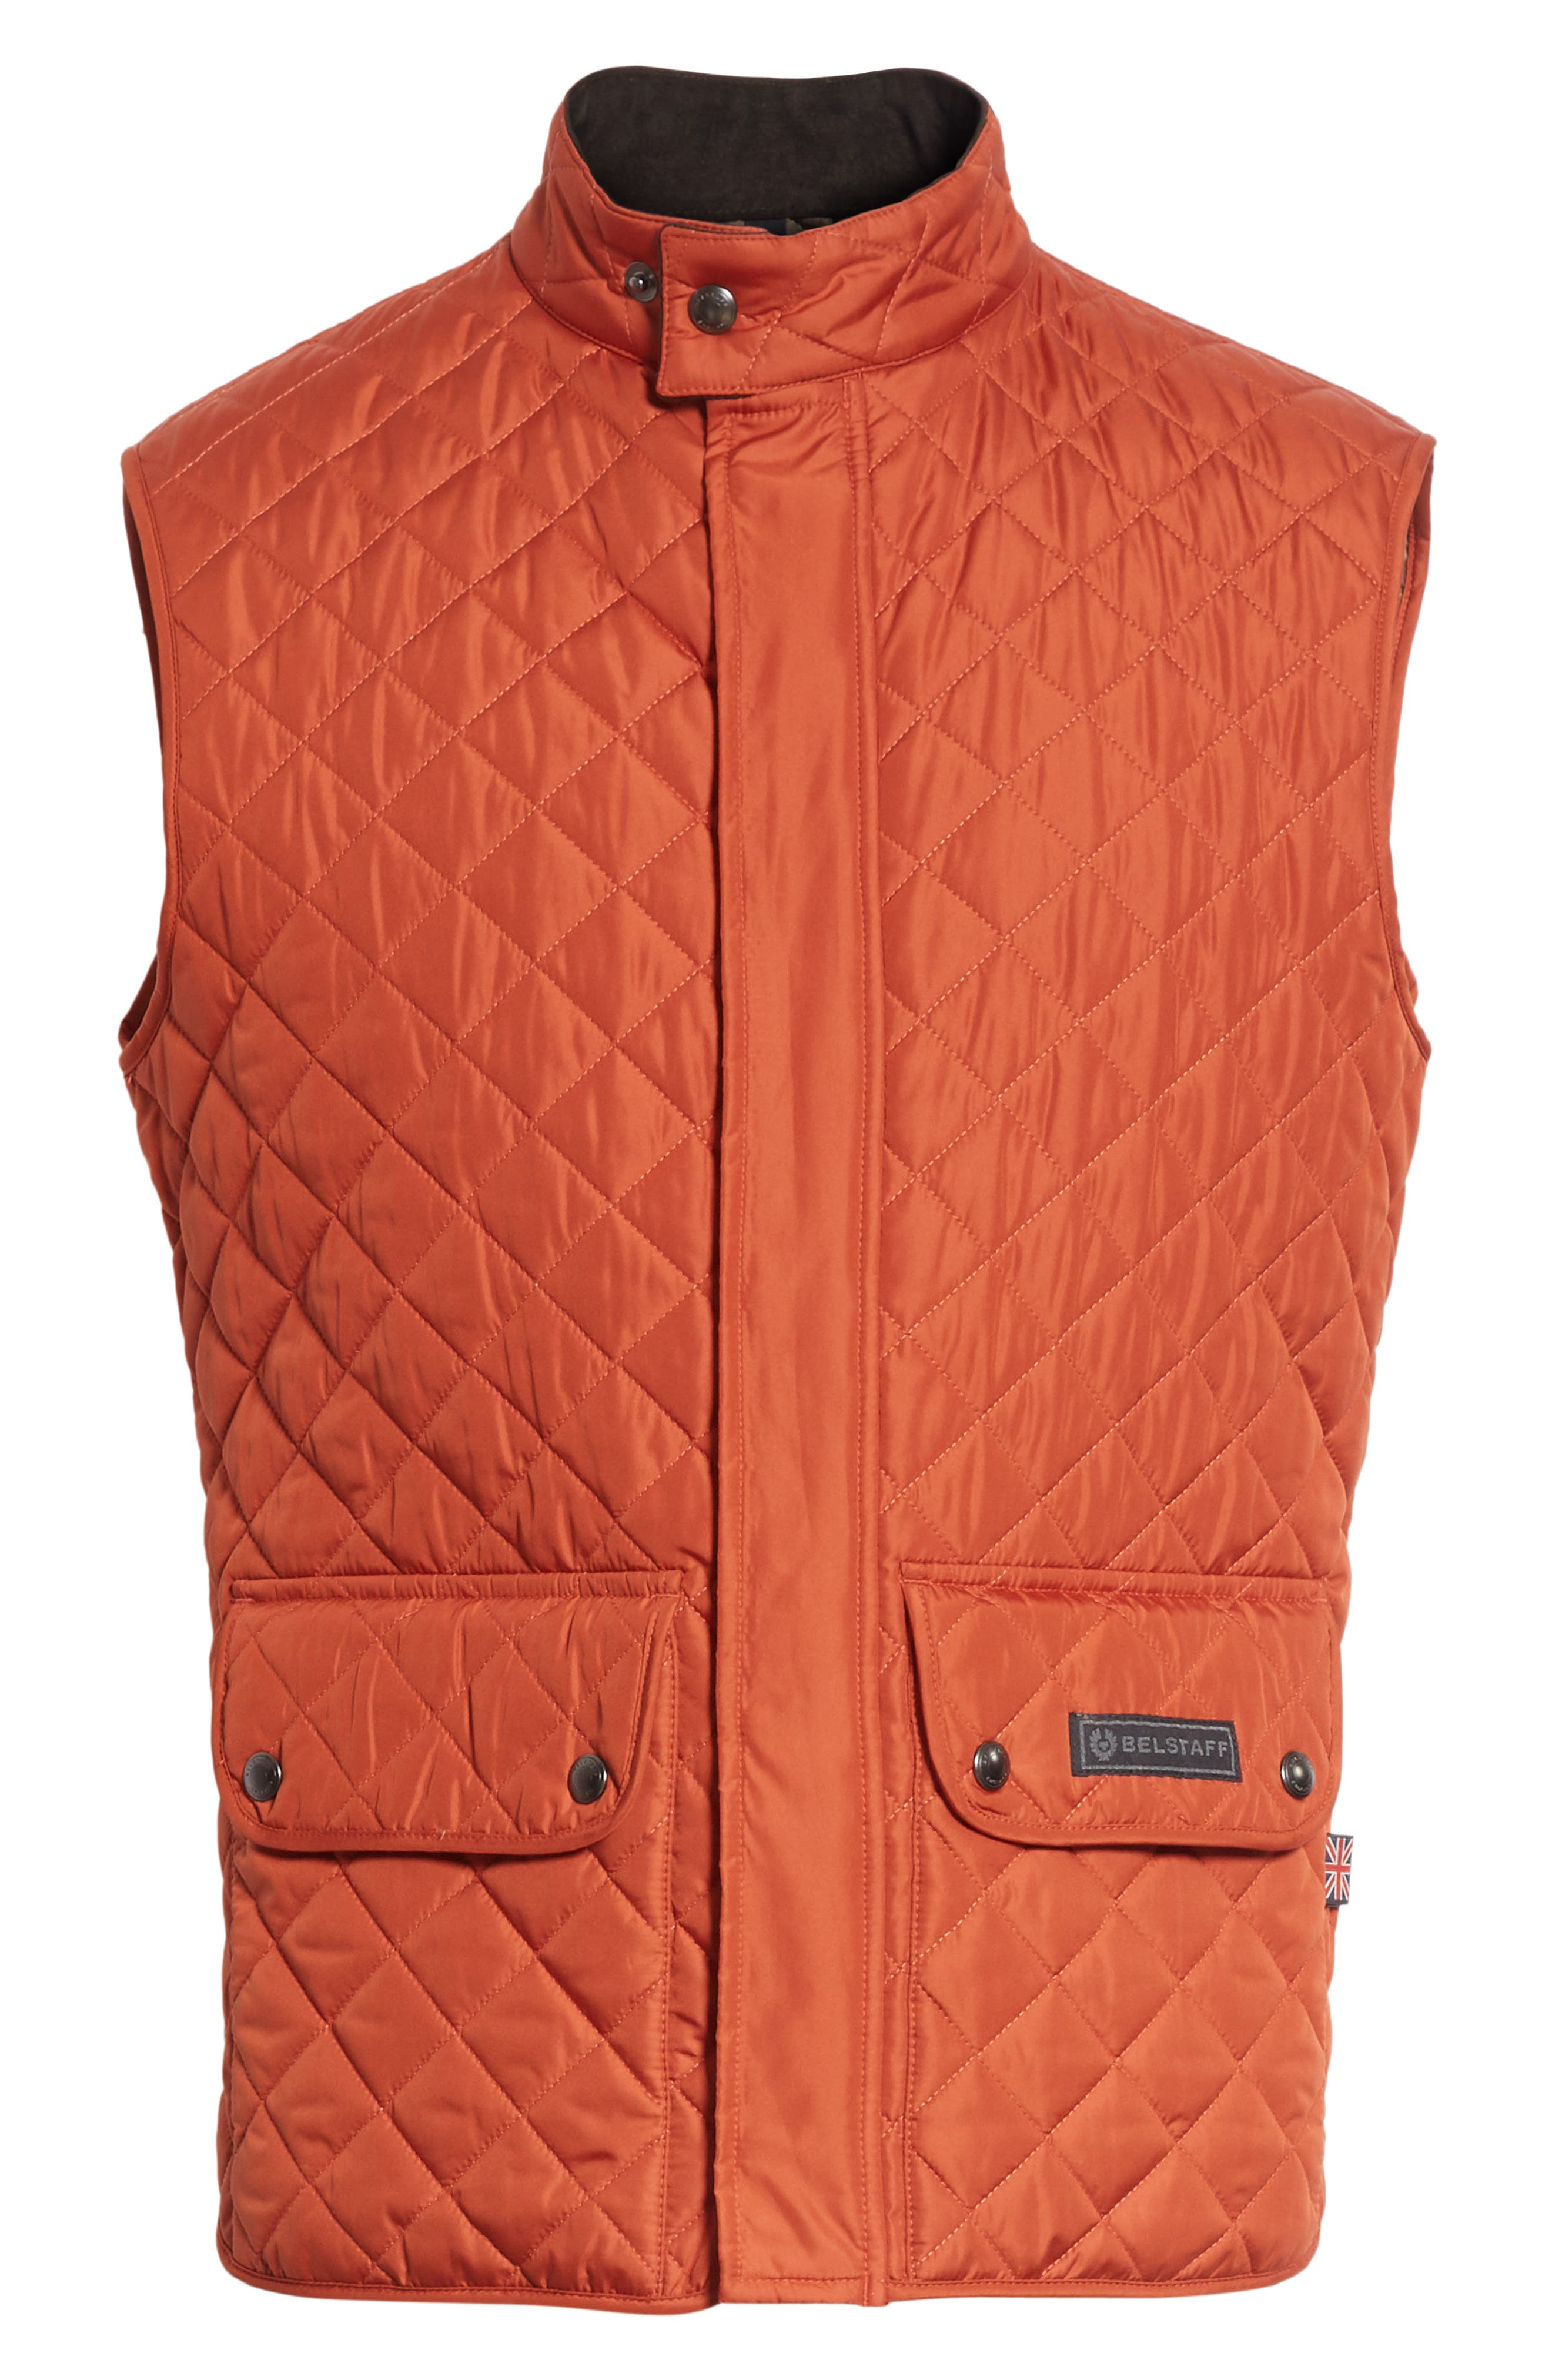 Waistcoat Tech Quilted Vest,                             Alternate thumbnail 5, color,                             BRIGHT TAMERIND